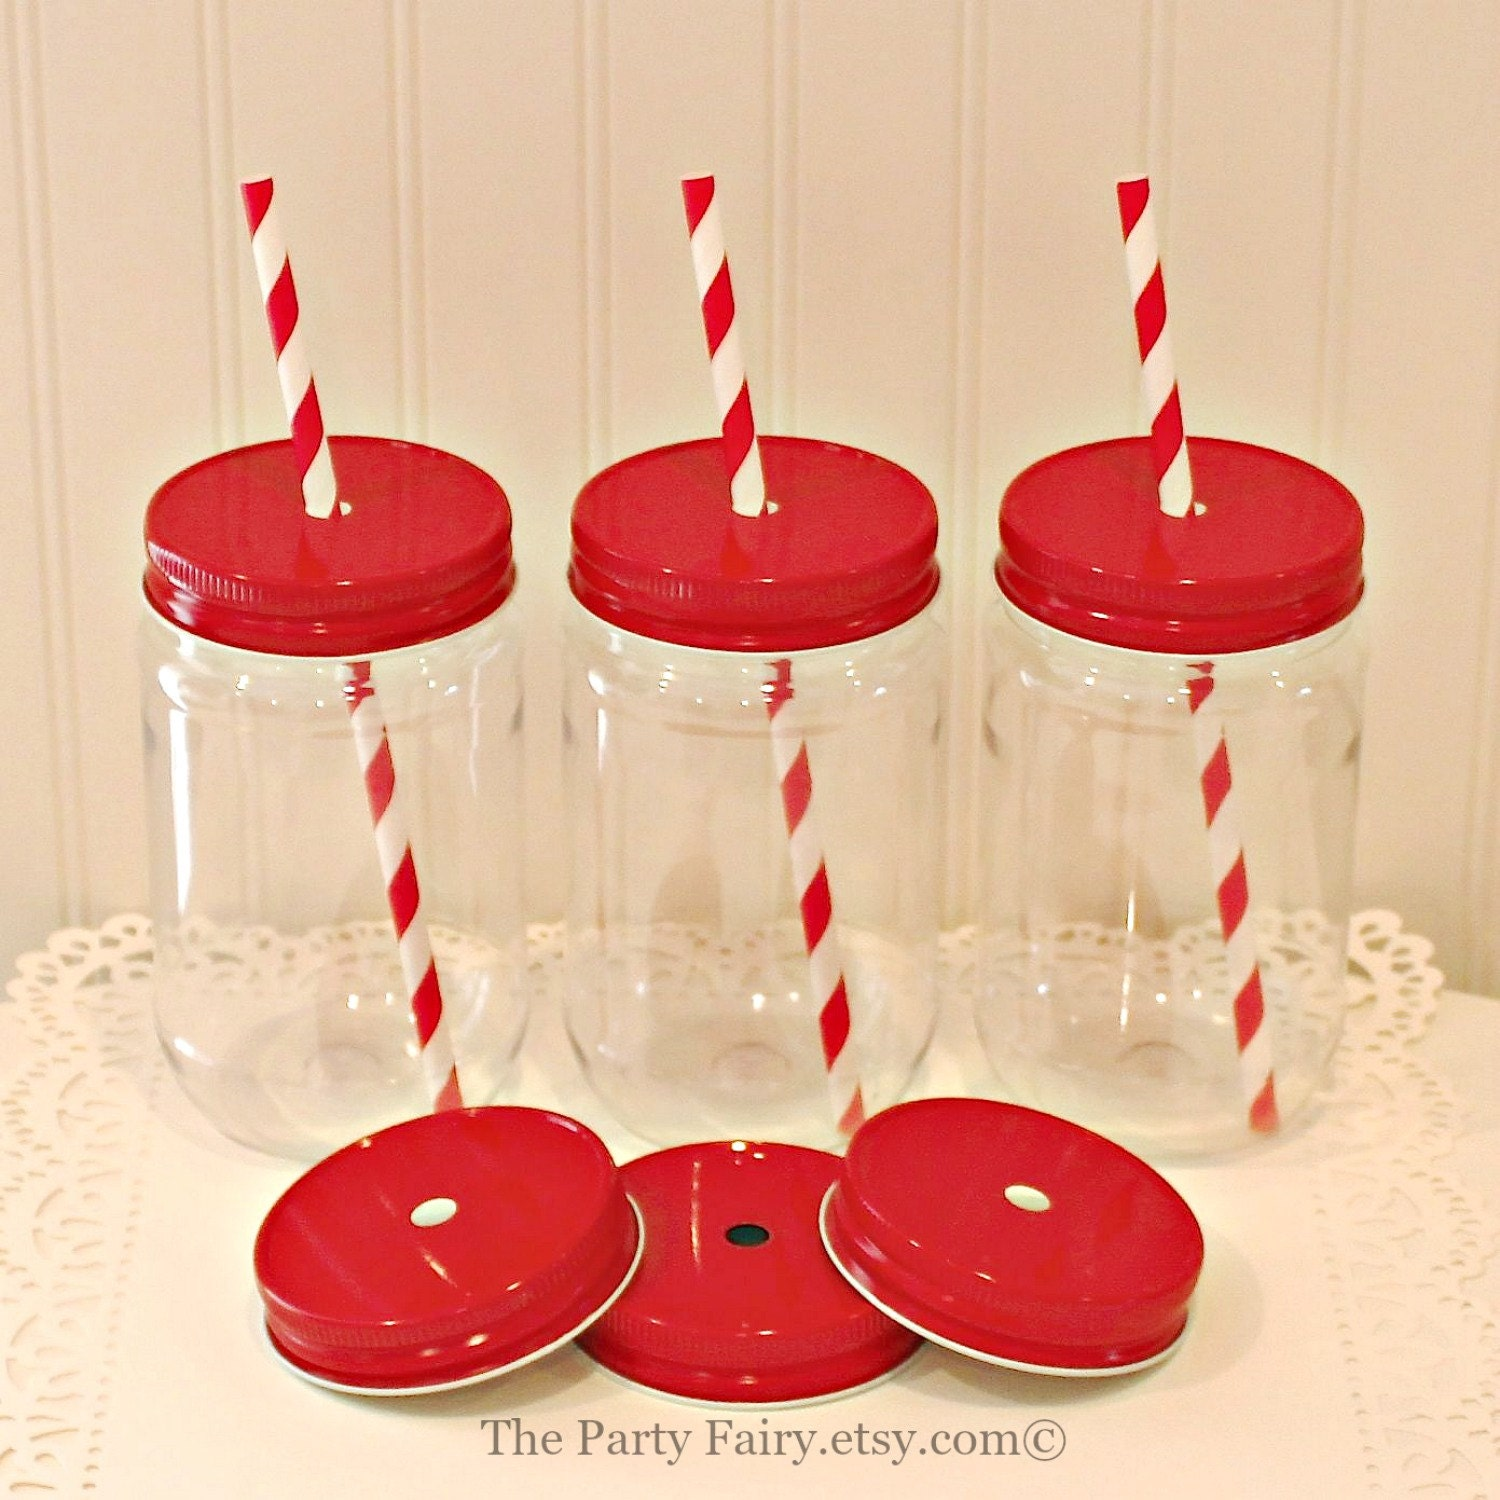 Plastic Mason Jar 6 Plastic Mason Jars with Metal Straw Hole